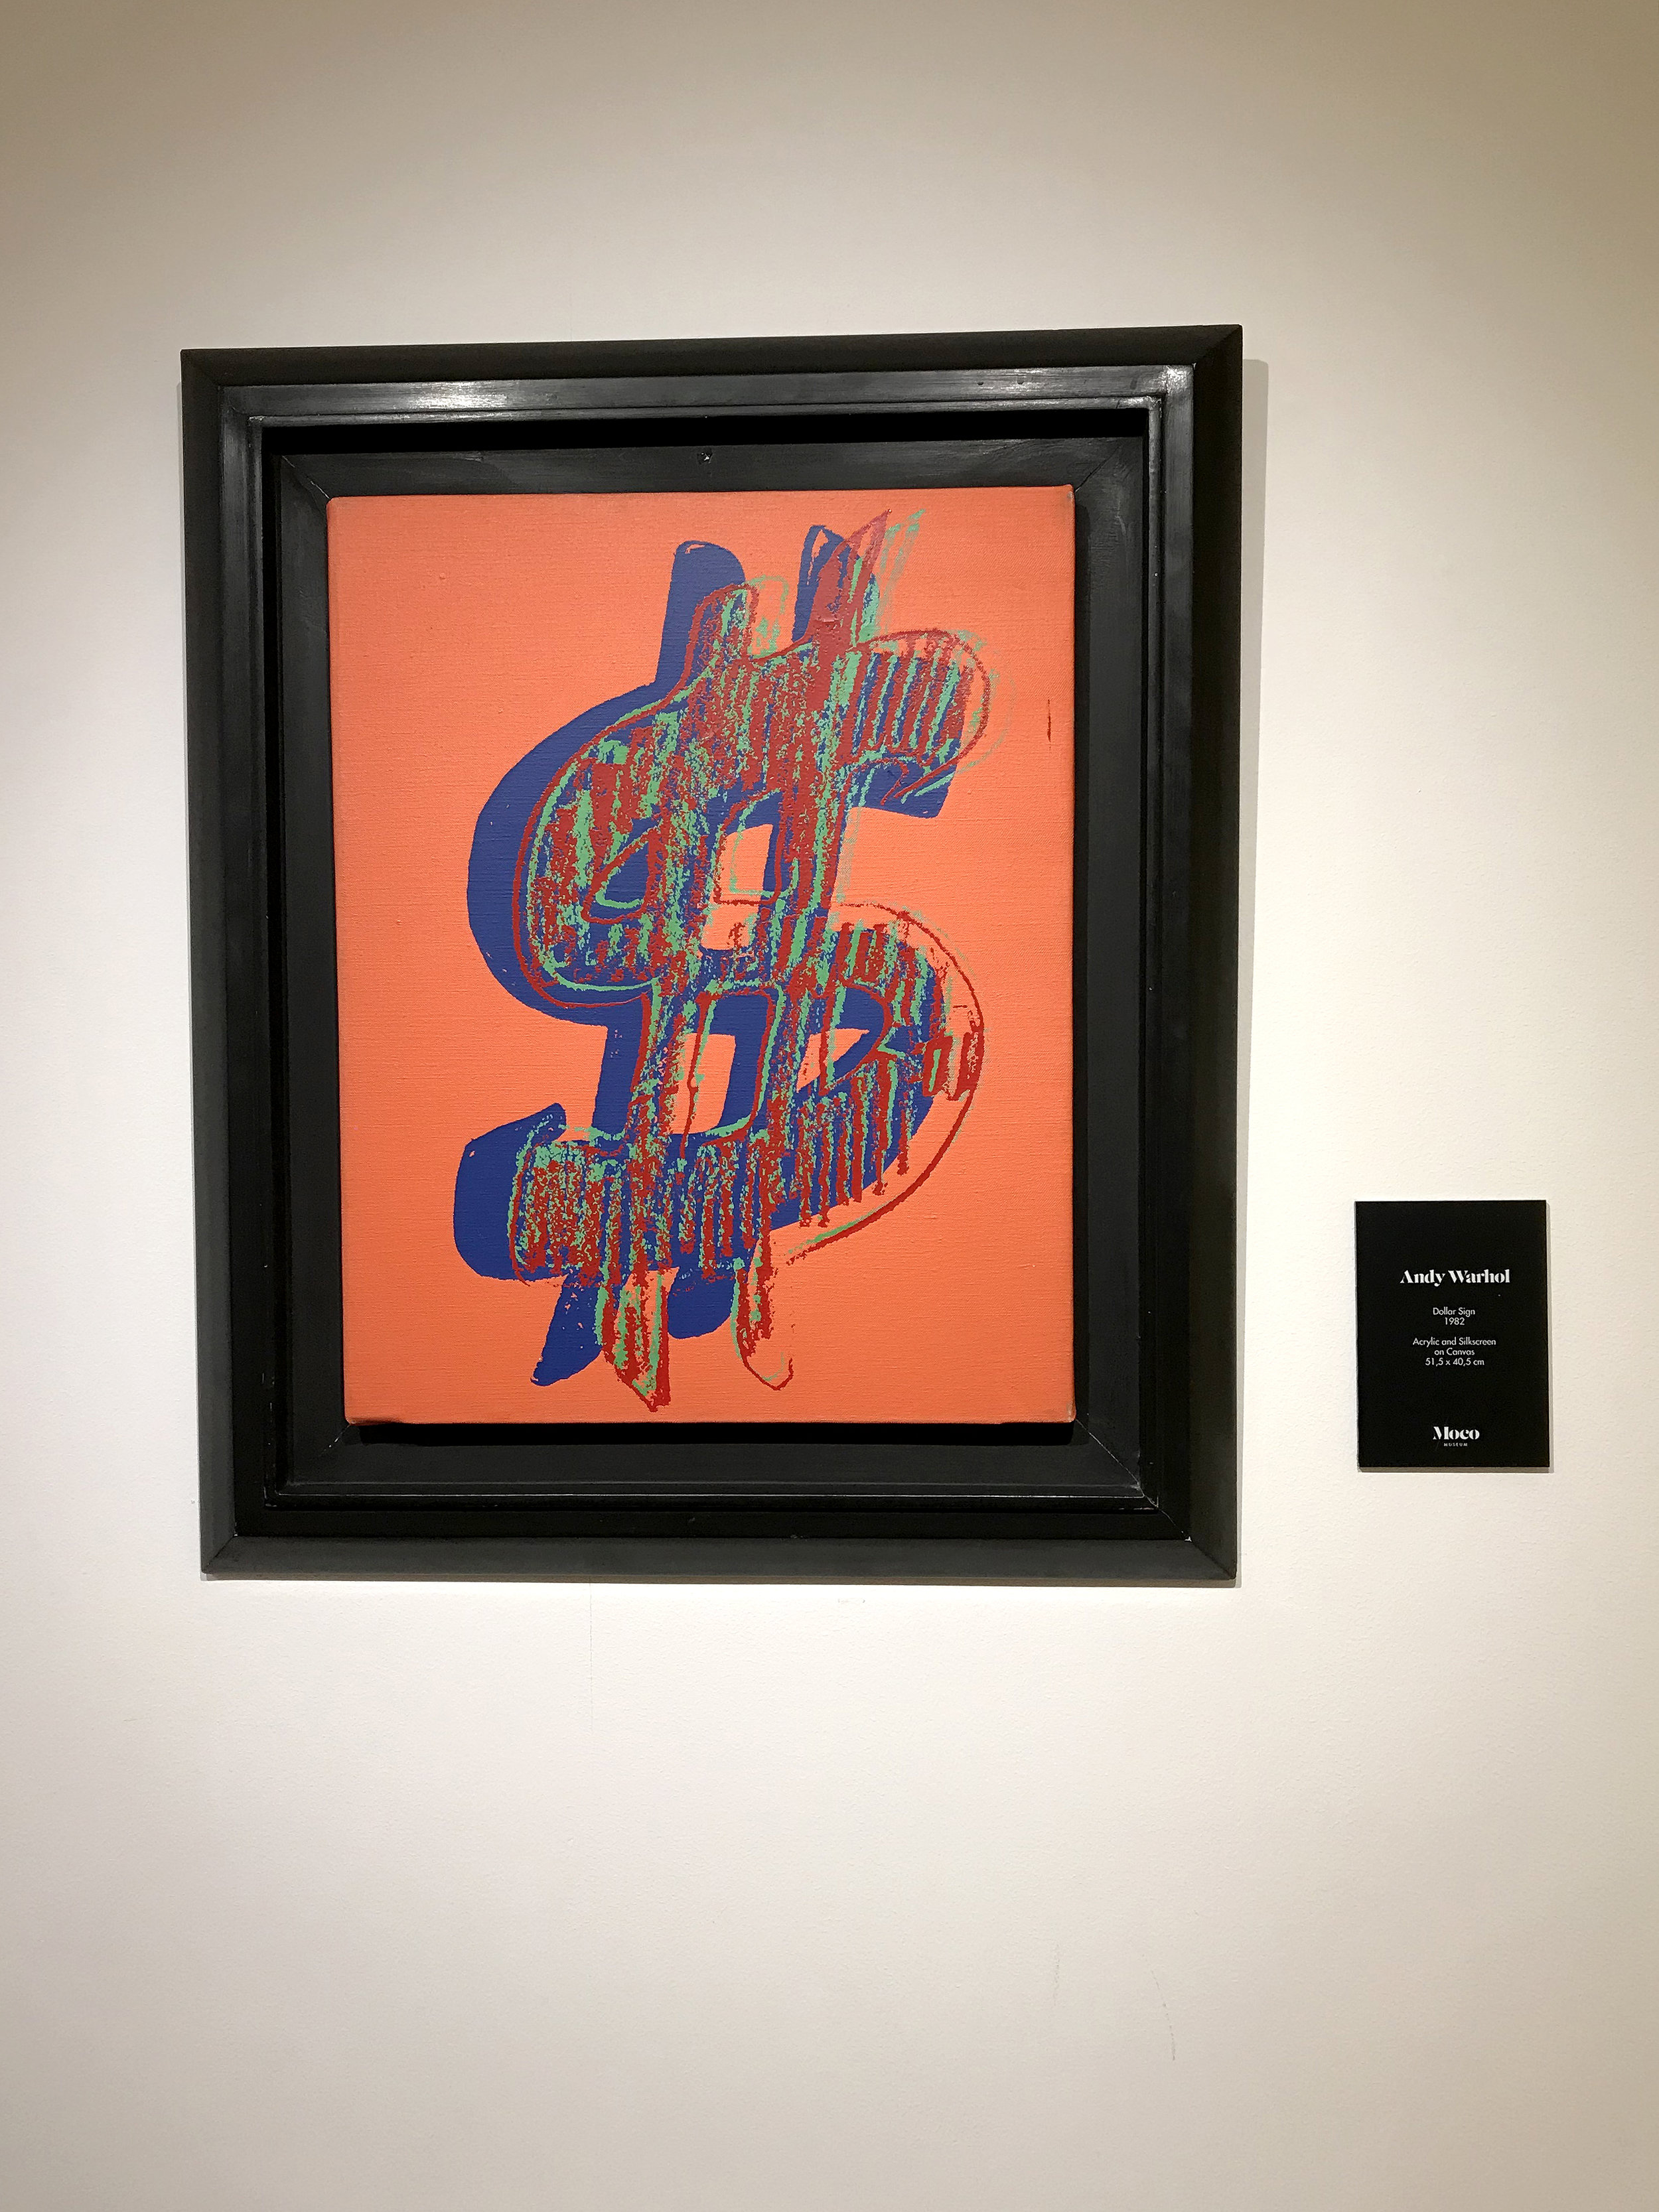 Andy Warhol Dollar Sign Blog 8bit